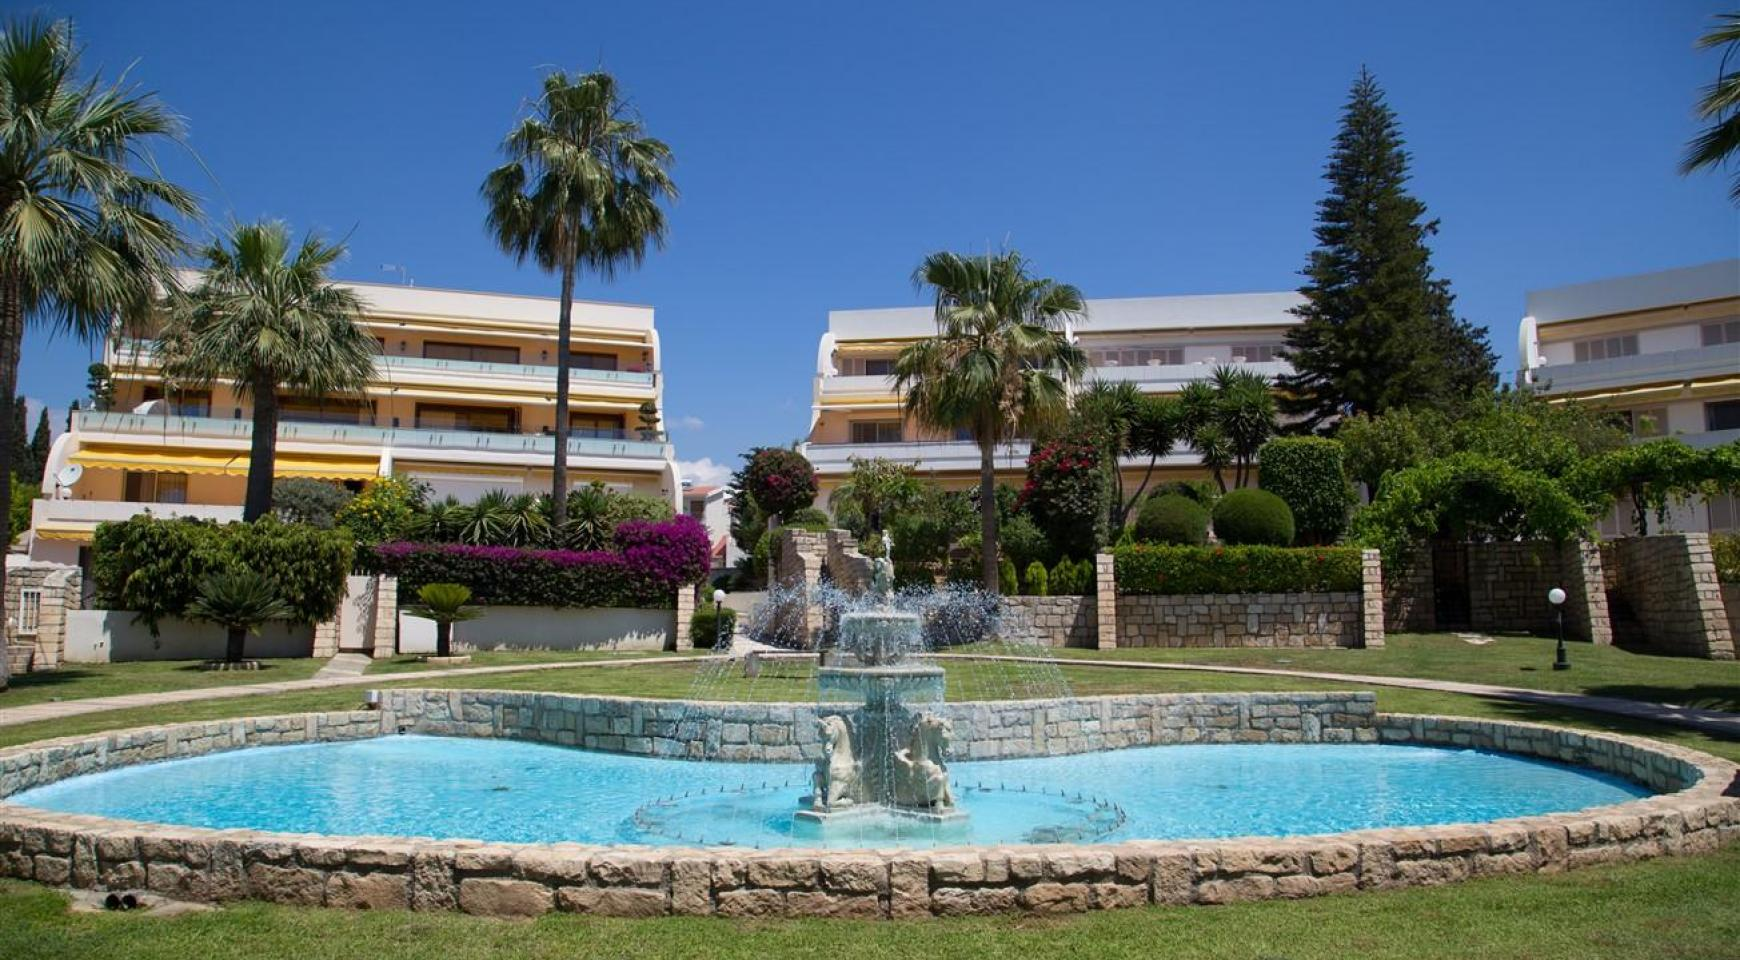 3 Bedroom Apartment in a Gated Complex by the Sea - 5